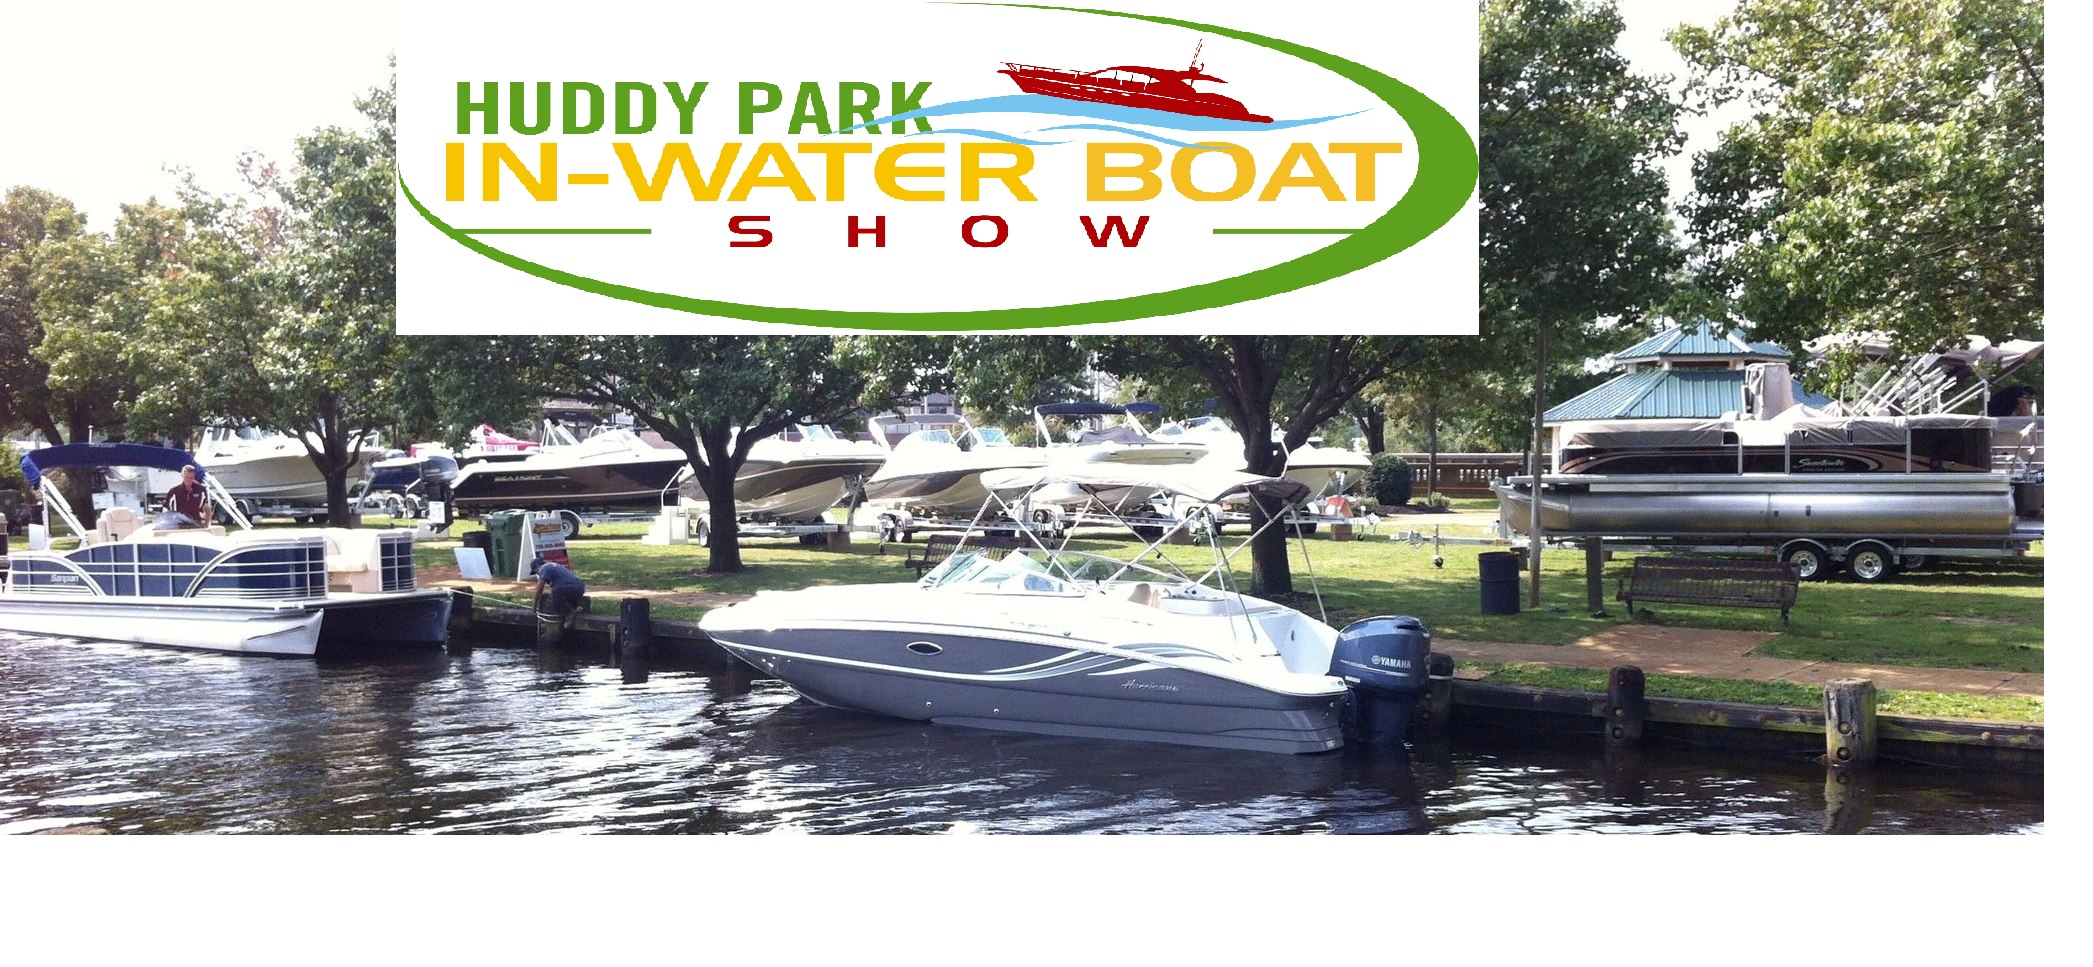 Our original huddy park in water boat show header and logo